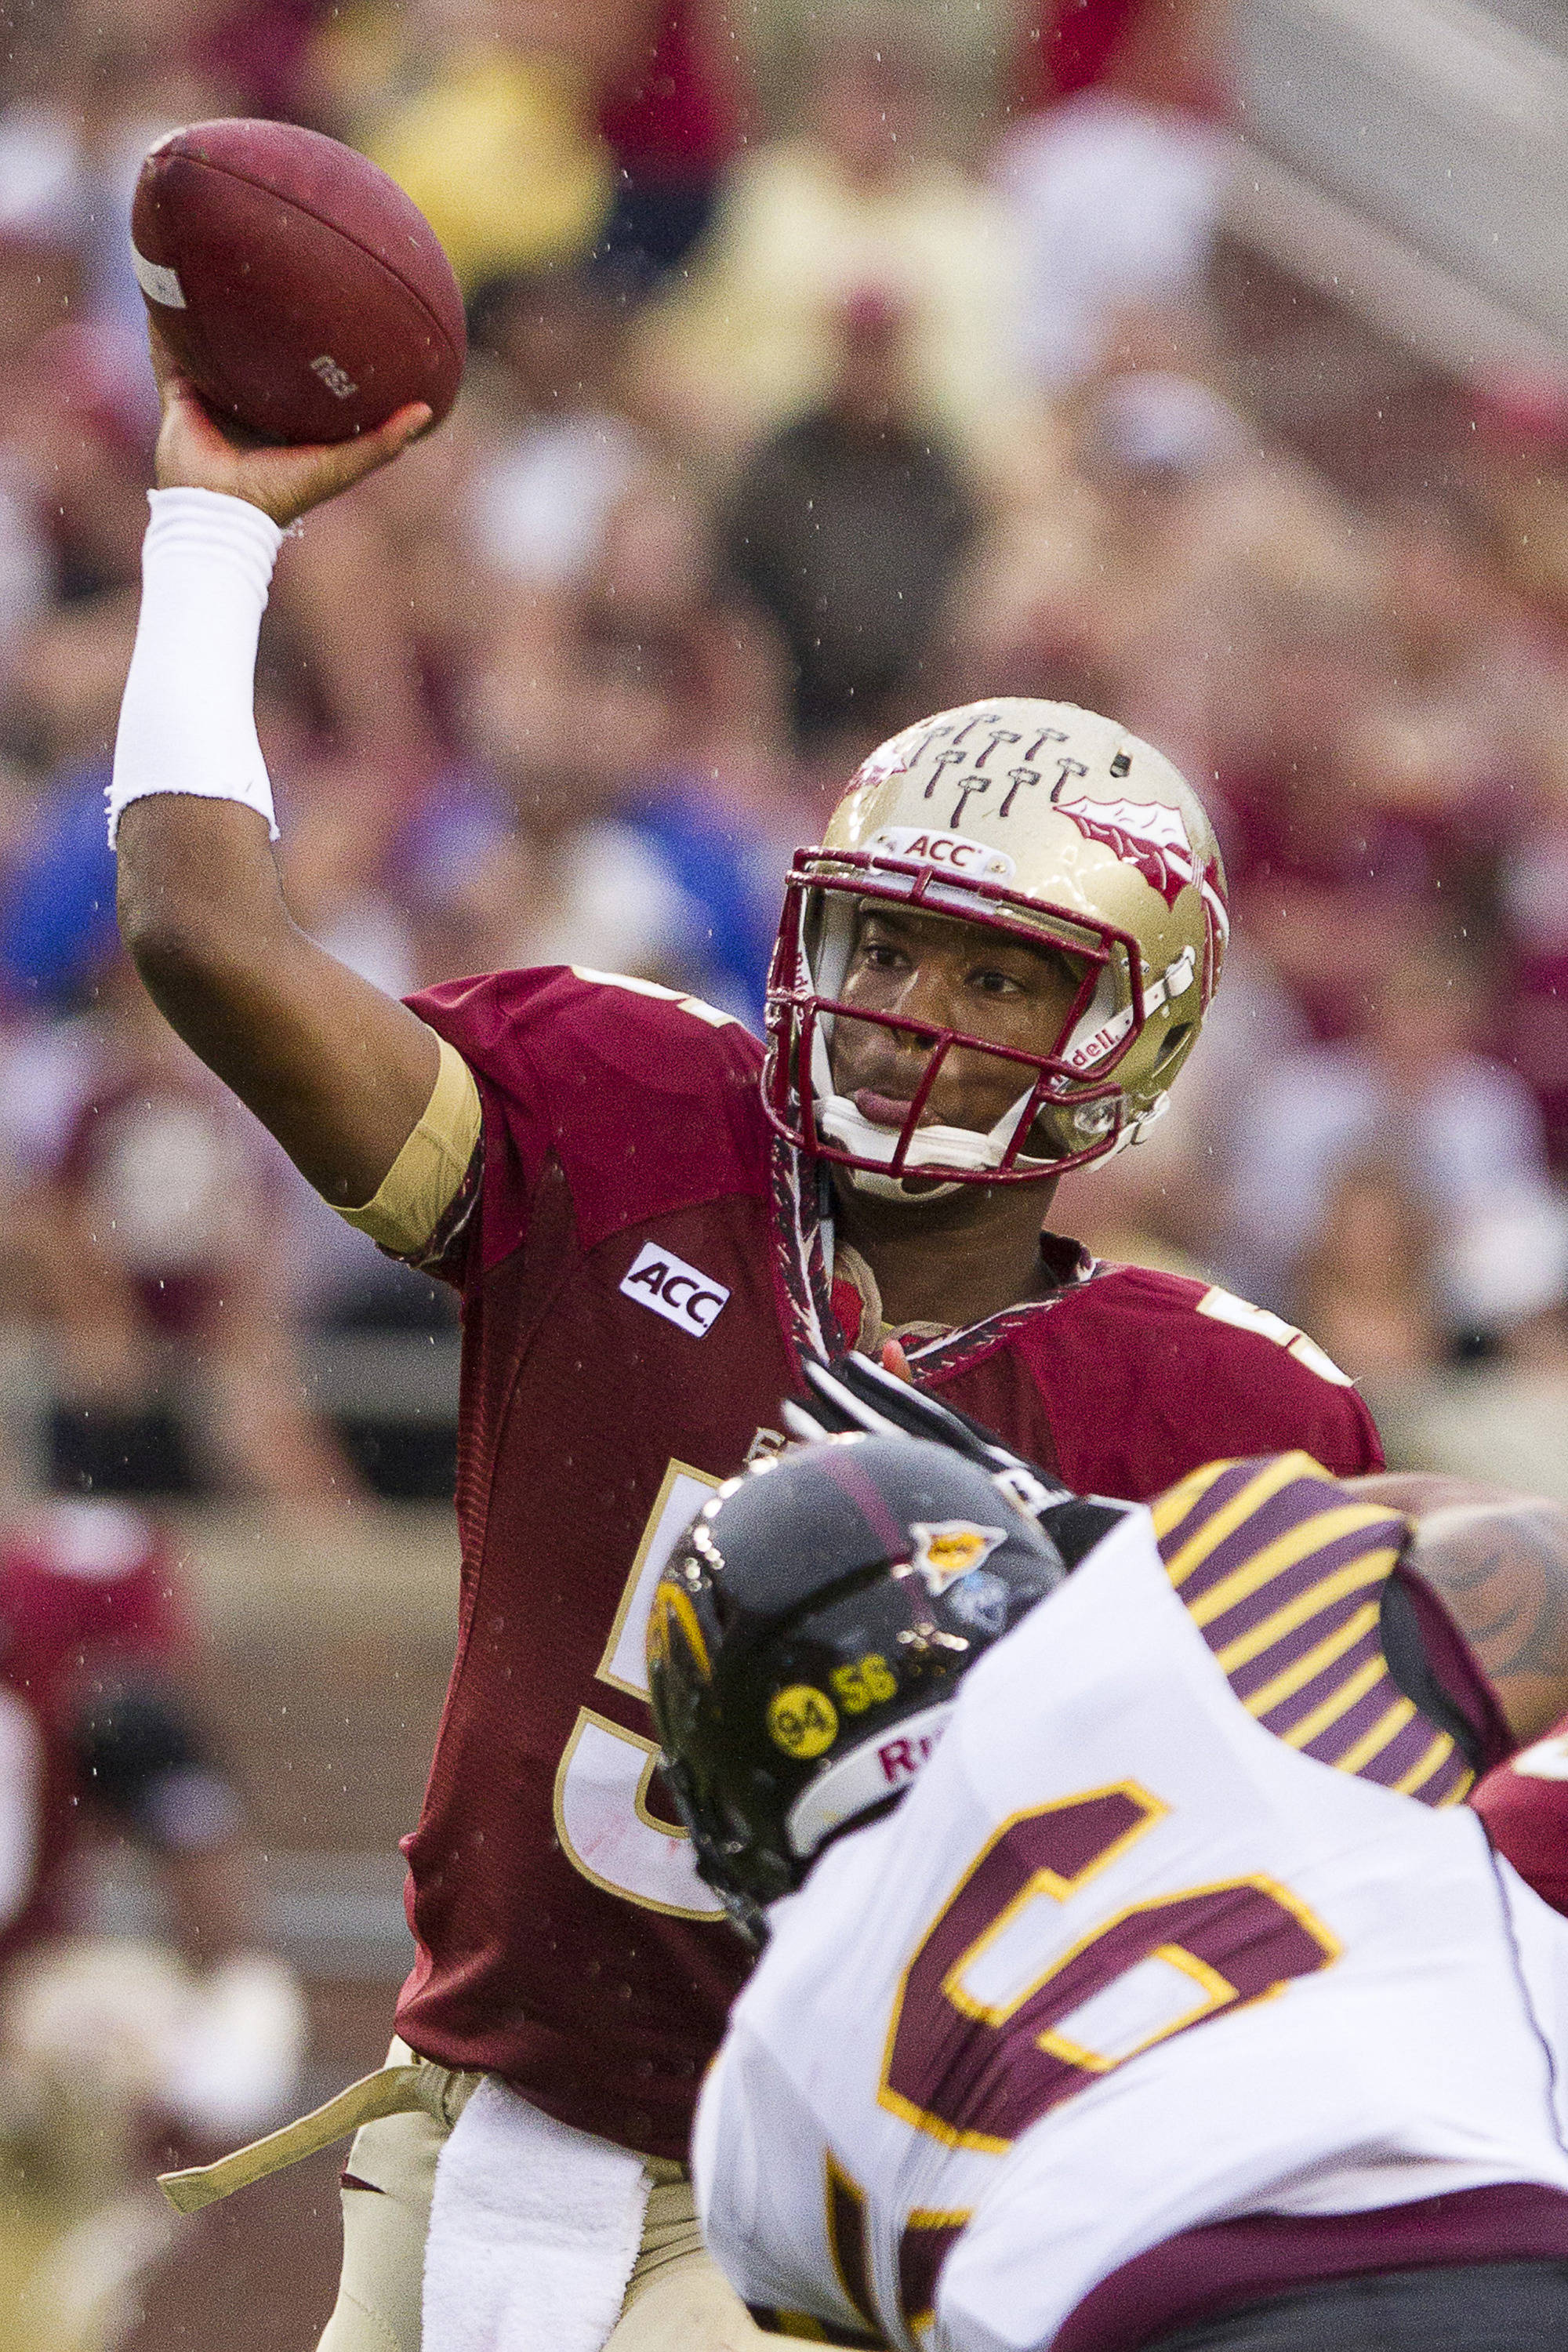 Jameis Winston (5) throws a pass during FSU Football's 54-6 win over Bethune-Cookman on September 21, 2013 in Tallahassee, Fla